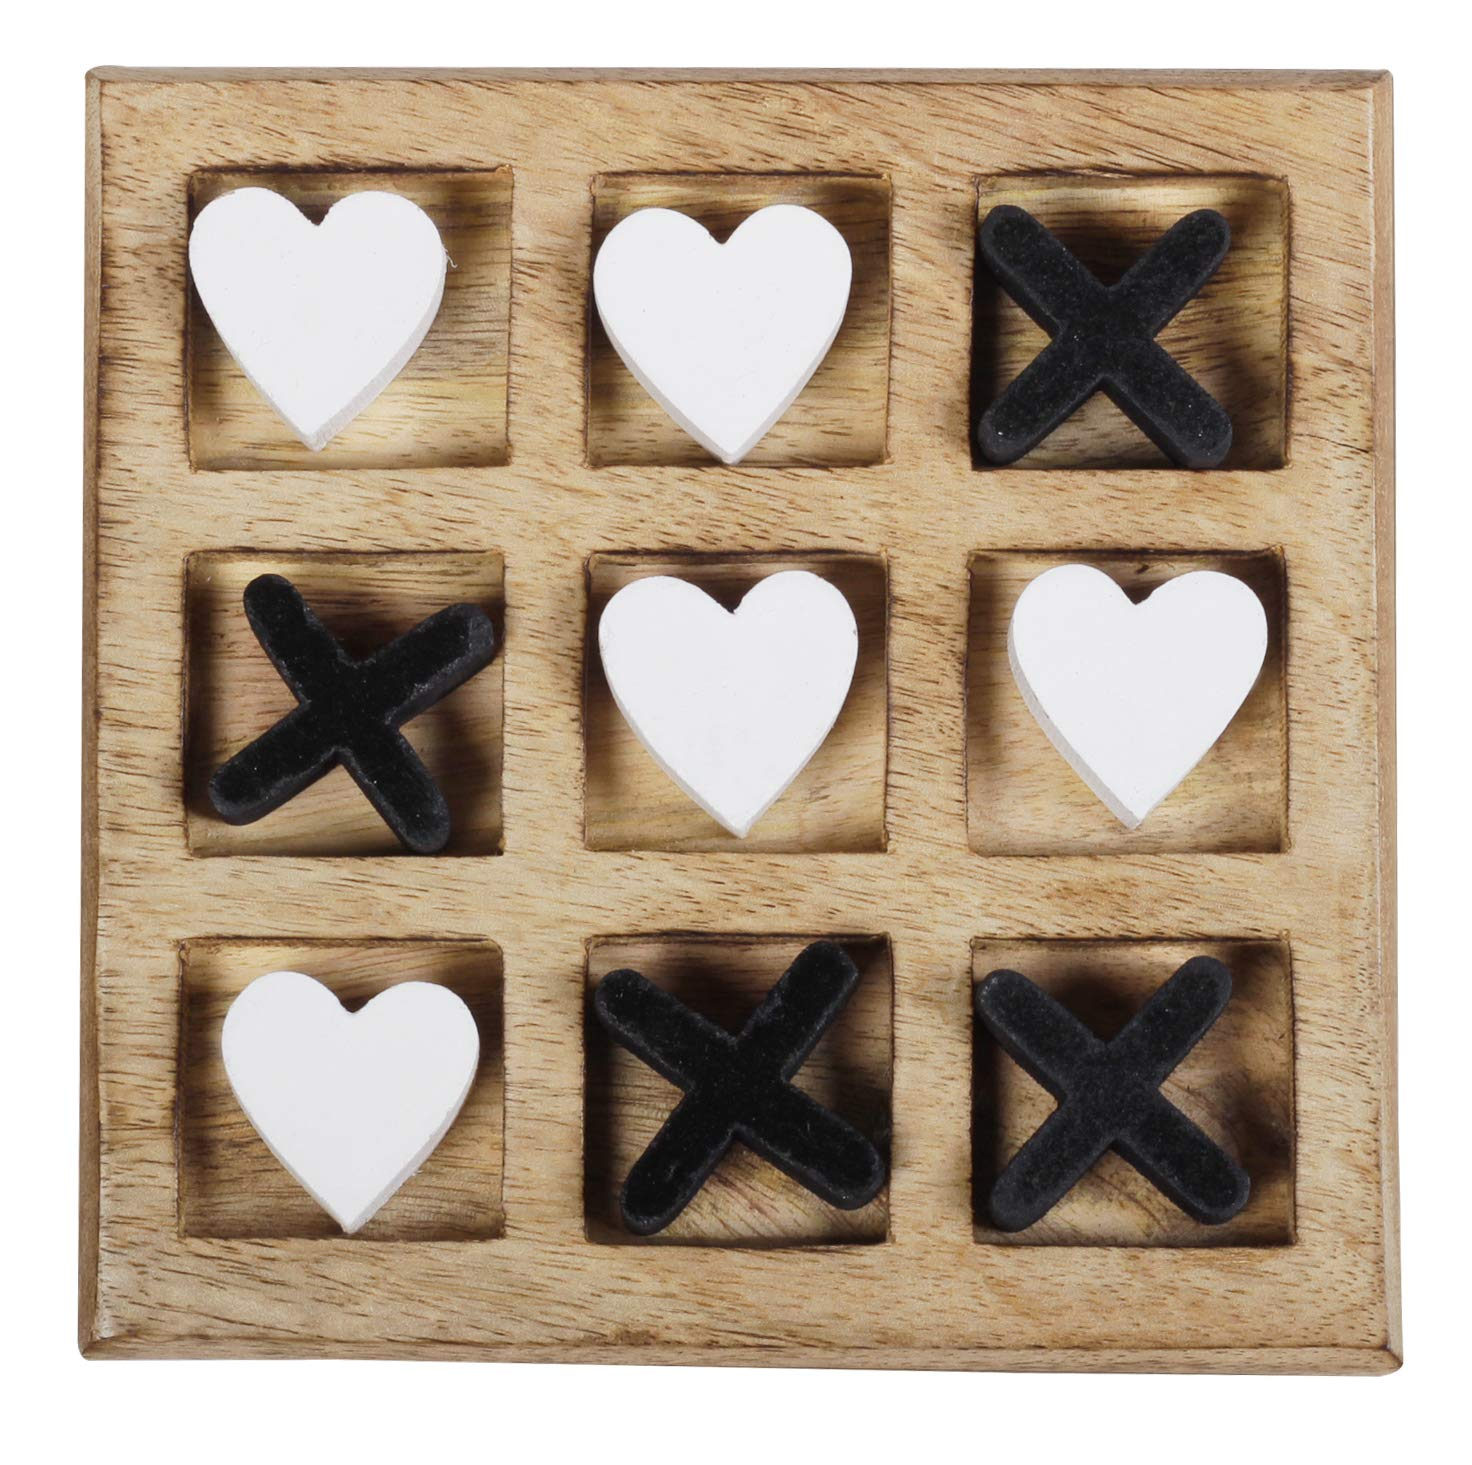 Great Gifts for Kids for All Occasions ARTISENIA/_The StoreKing Handmade Wooden Tic Tac Toe Game for Kids 7 and Up Black /& White